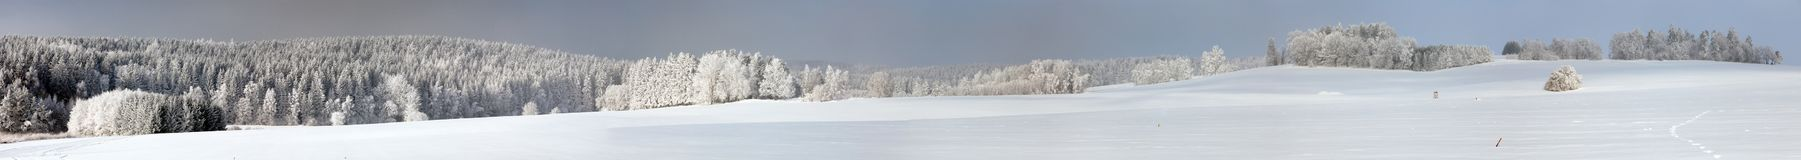 Wintry view from Bohemian and Moravian highlands. White frost on forest trees and snow cowered field Stock Image